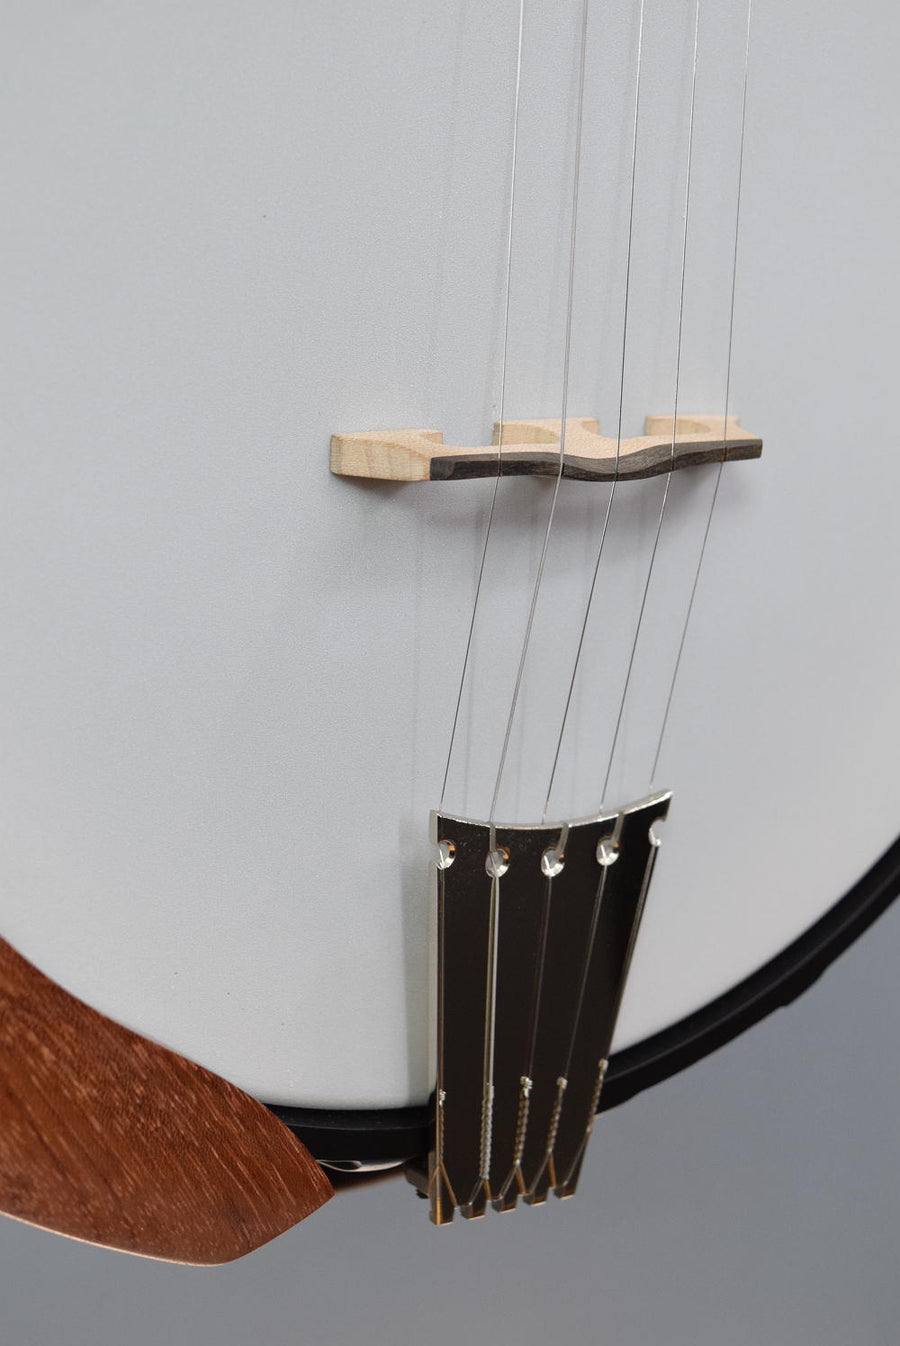 Nechville Photon Custom Resonator Banjo (#2657)